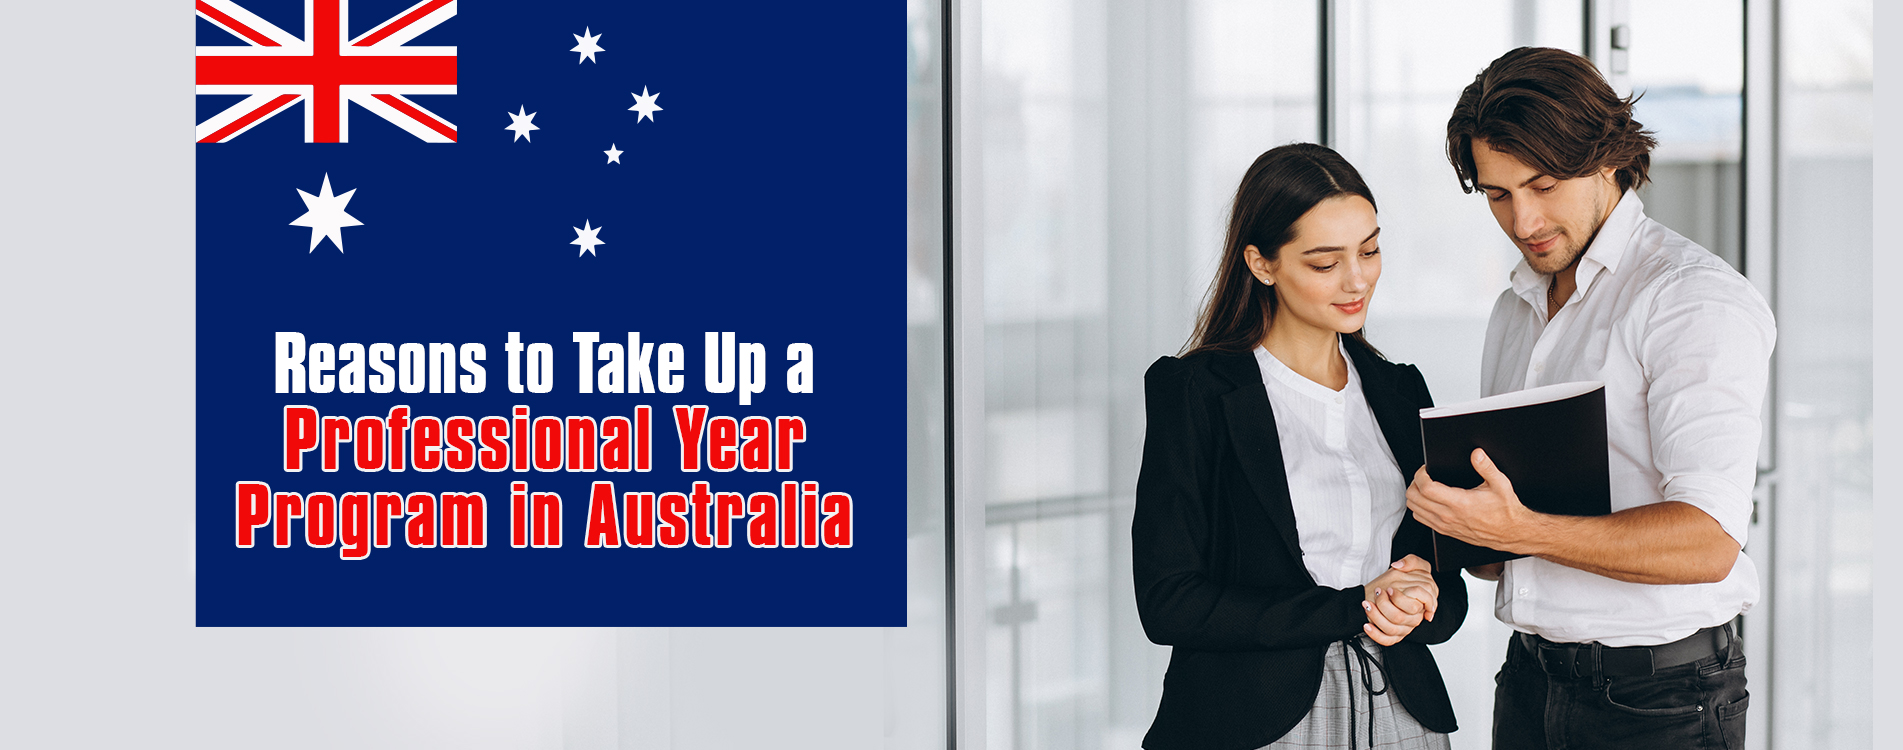 Reasons to Take Up a Professional Year Program in Australia